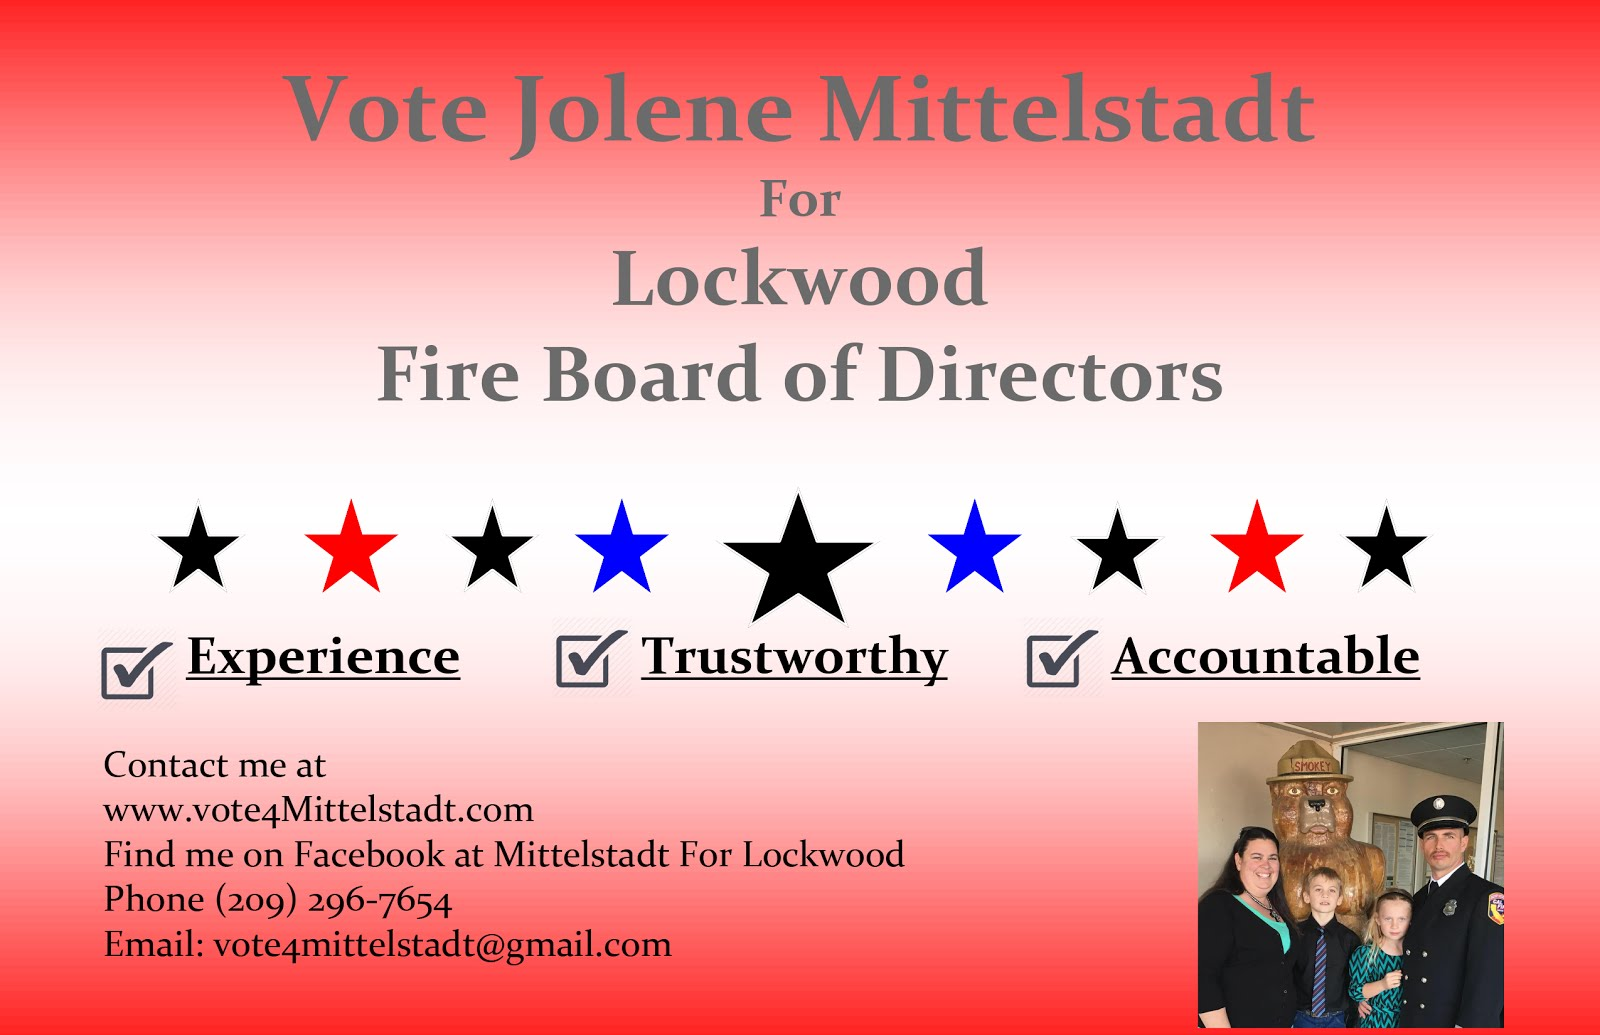 Jolene Mittlestadt for Lockwood Fire Board of Directors